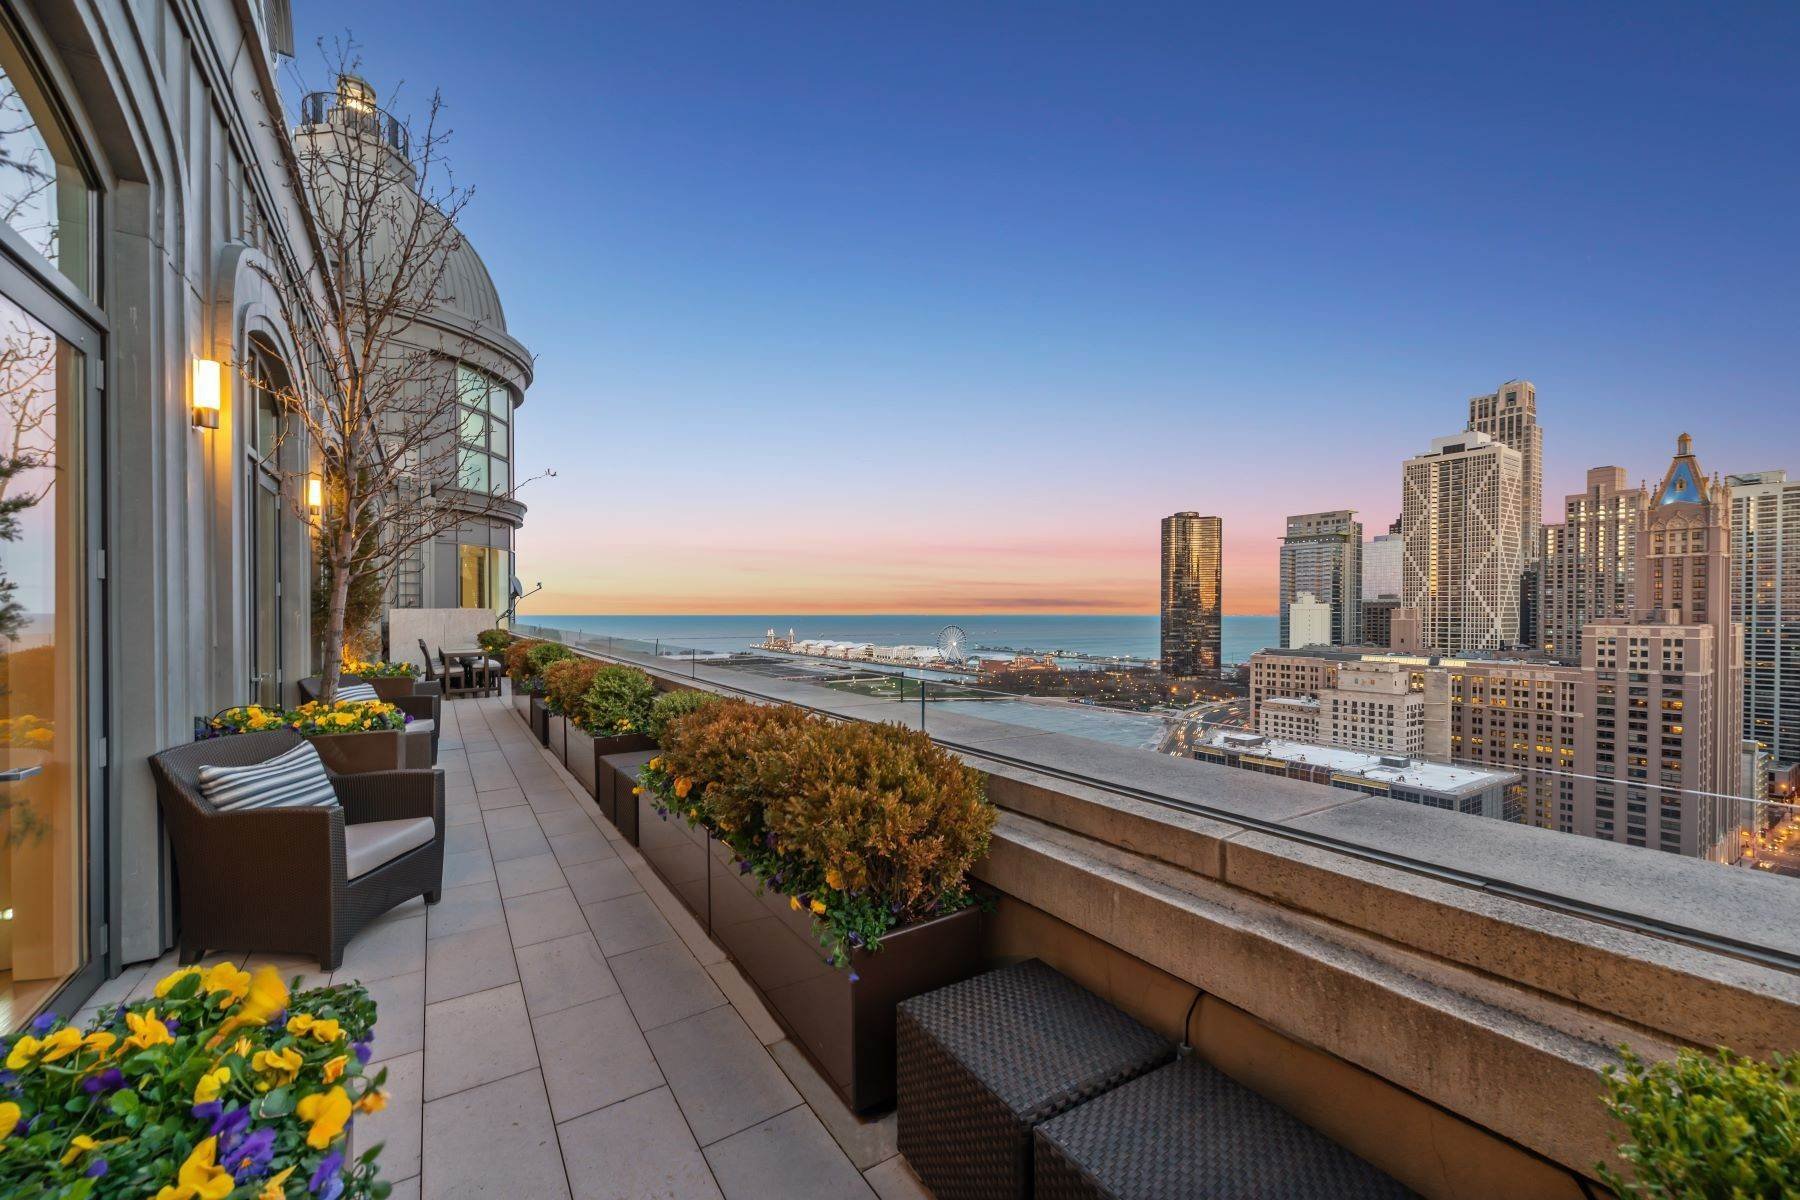 Property for Sale at Chicago's Most Iconic Penthouse 840 N Lake Shore Drive, Unit 2601 Chicago, Illinois 60611 United States